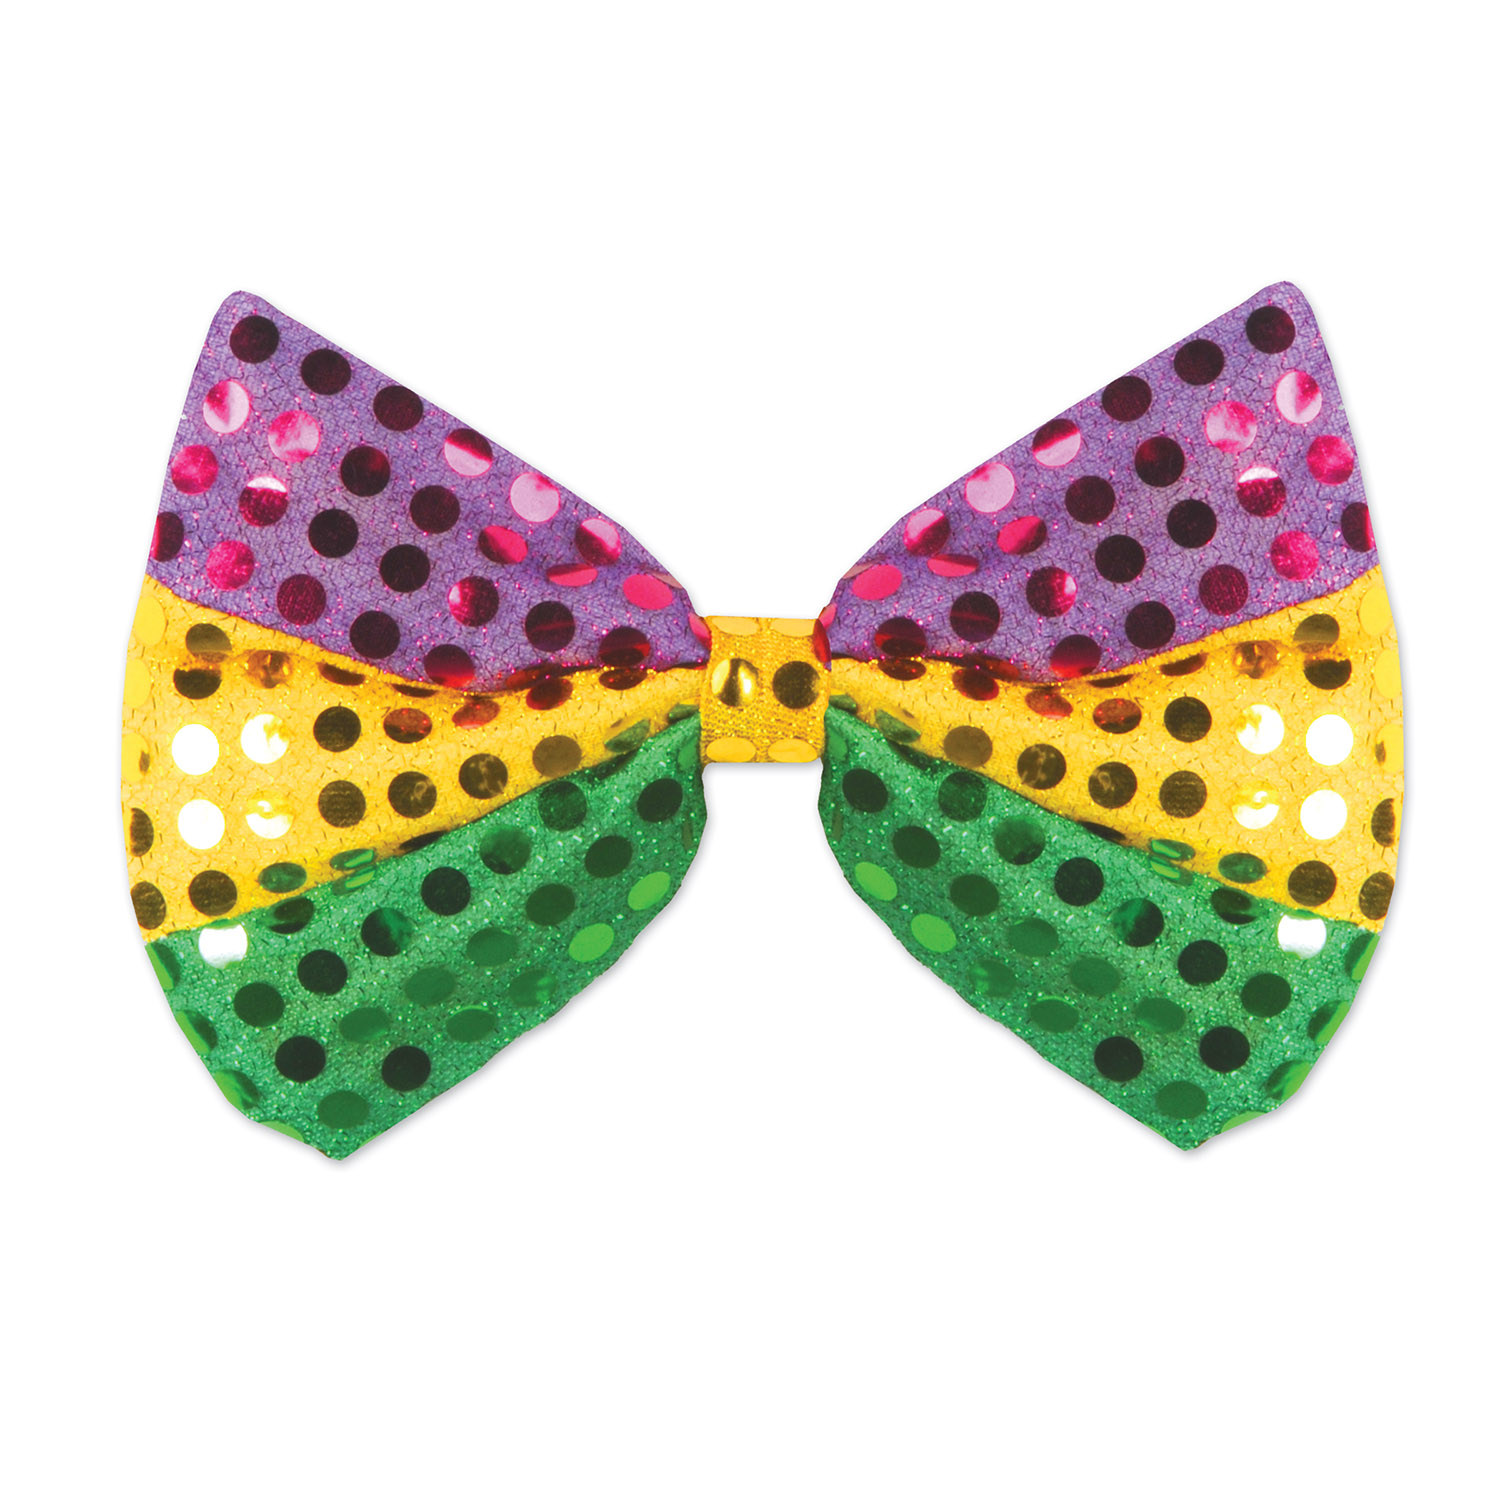 Glitz N Gleam Bow Tie (Pack of 12) Glitz N Gleam Bow Tie, party favor, mardi gras, new years eve, wholesale, inexpensive, bulk